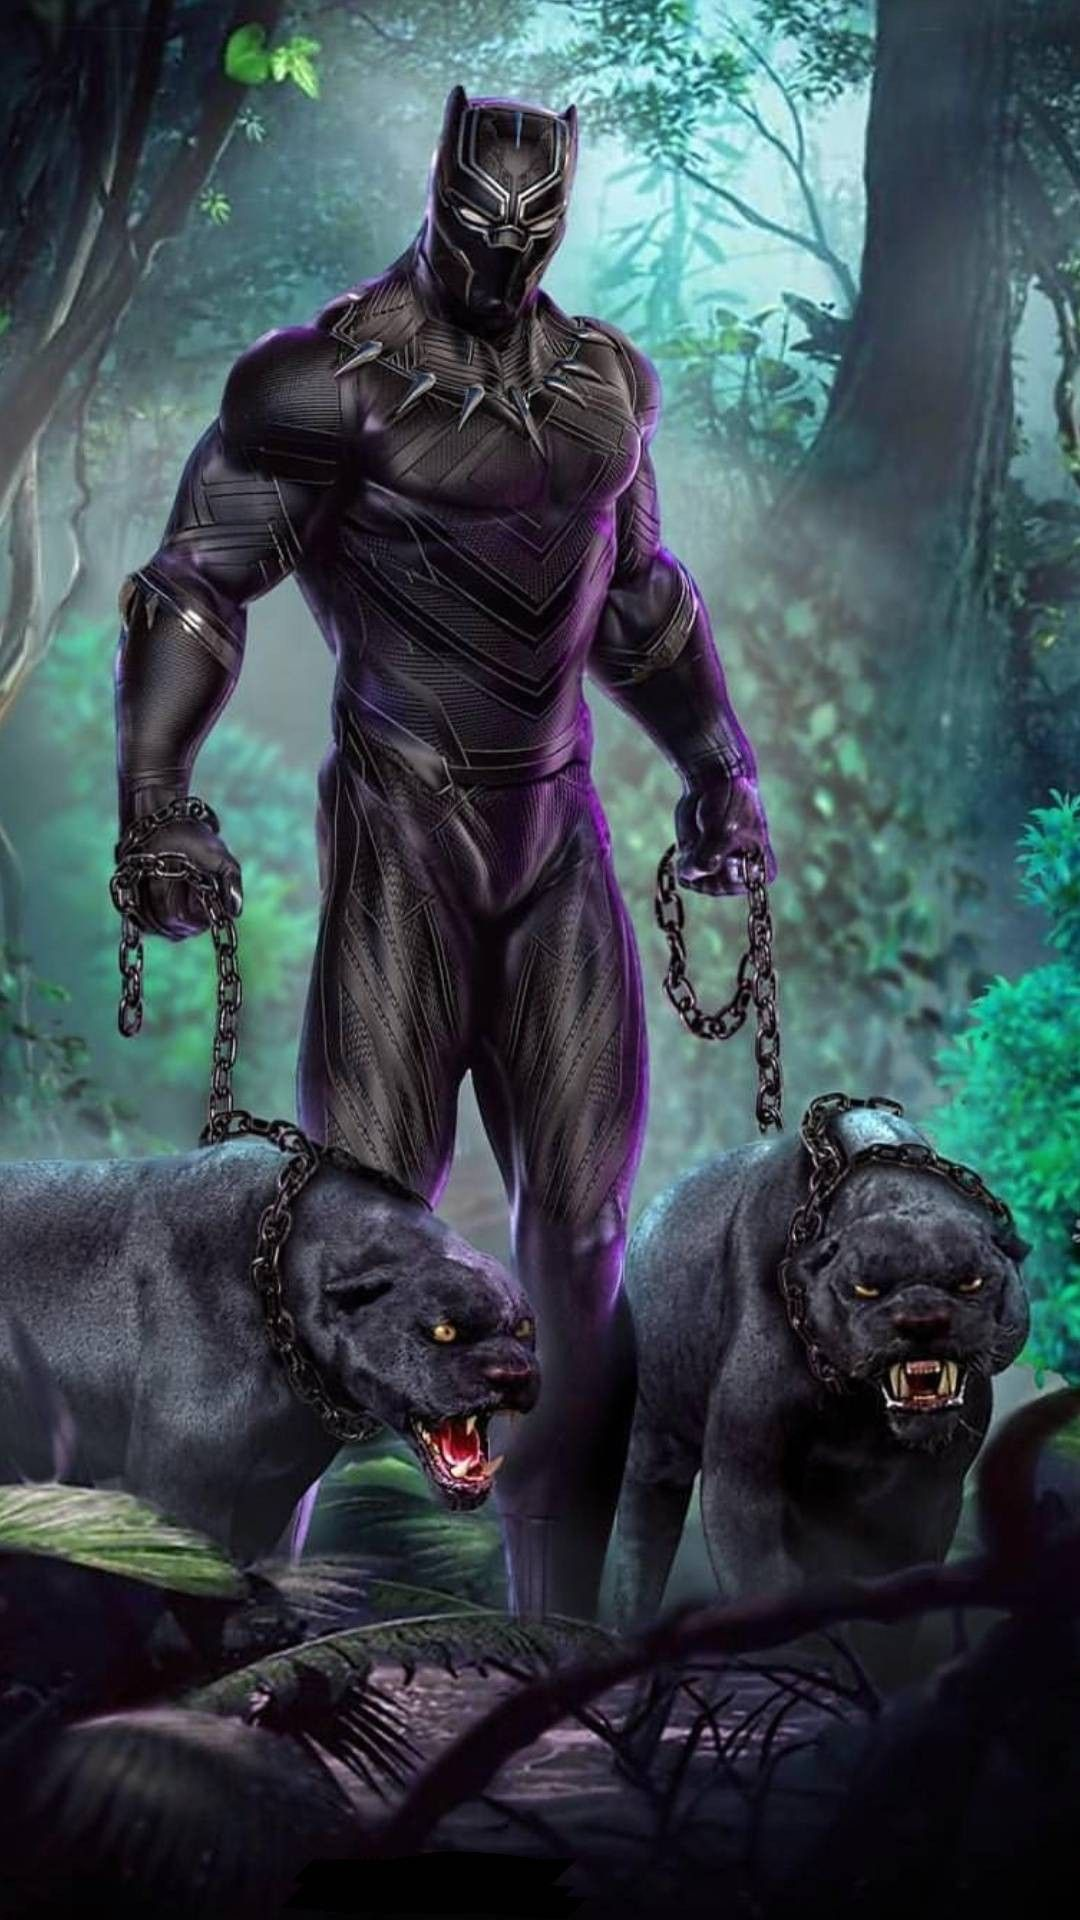 Pin by Master positive on Wallpapers Black panther